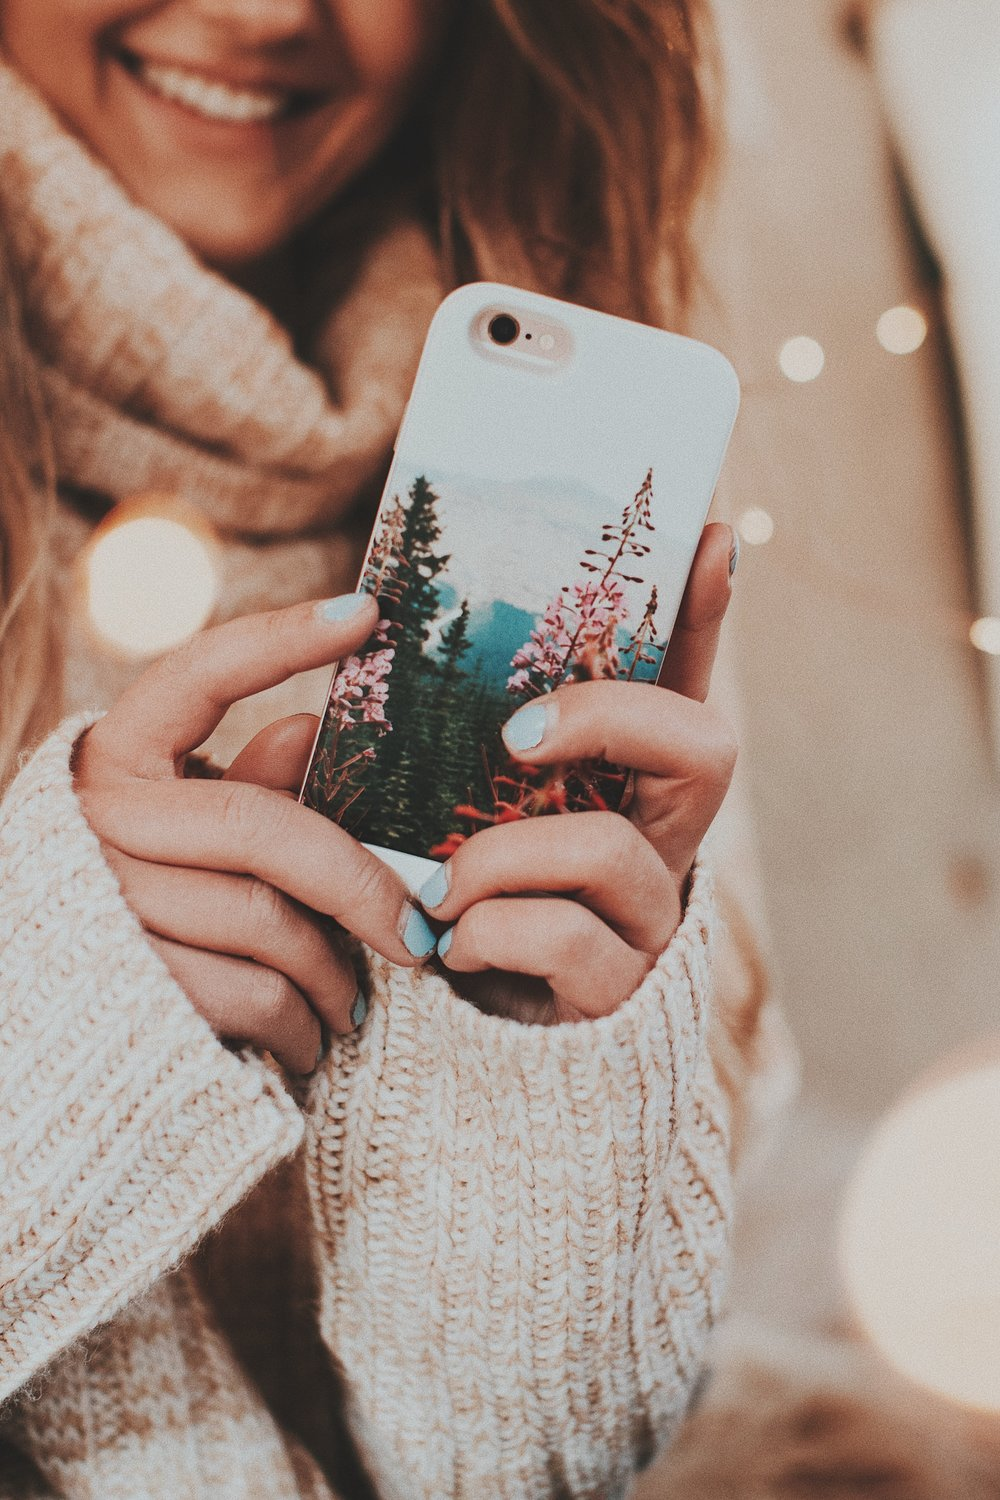 Create you own custom phone case at  https://us.casestation.com  !